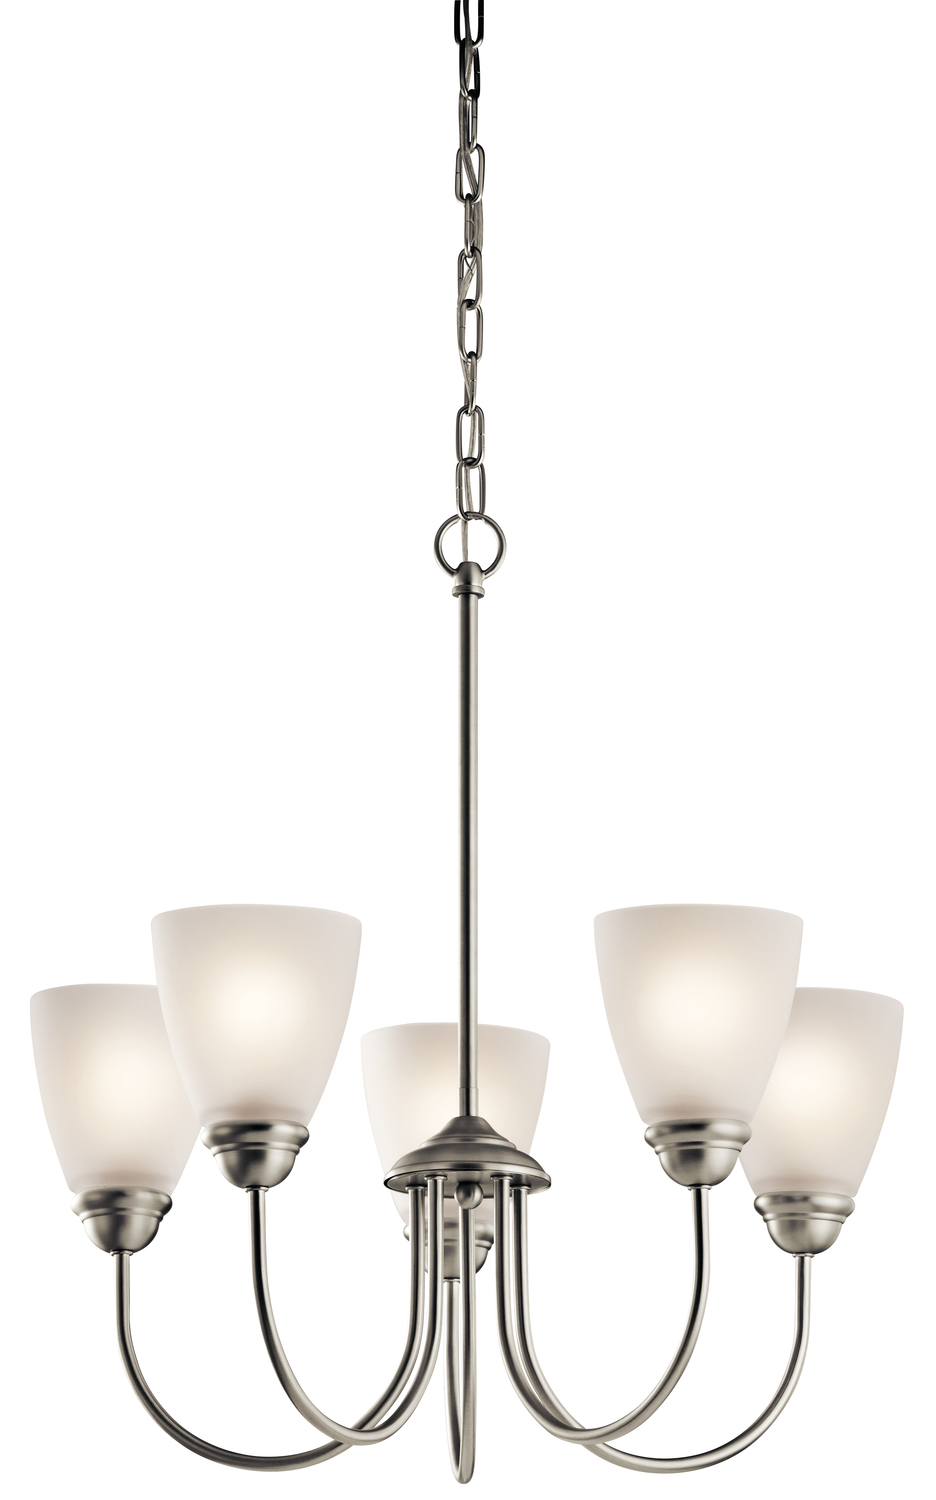 KIC 43638NI 5X100M Jolie Brushed Nickel Chandelier